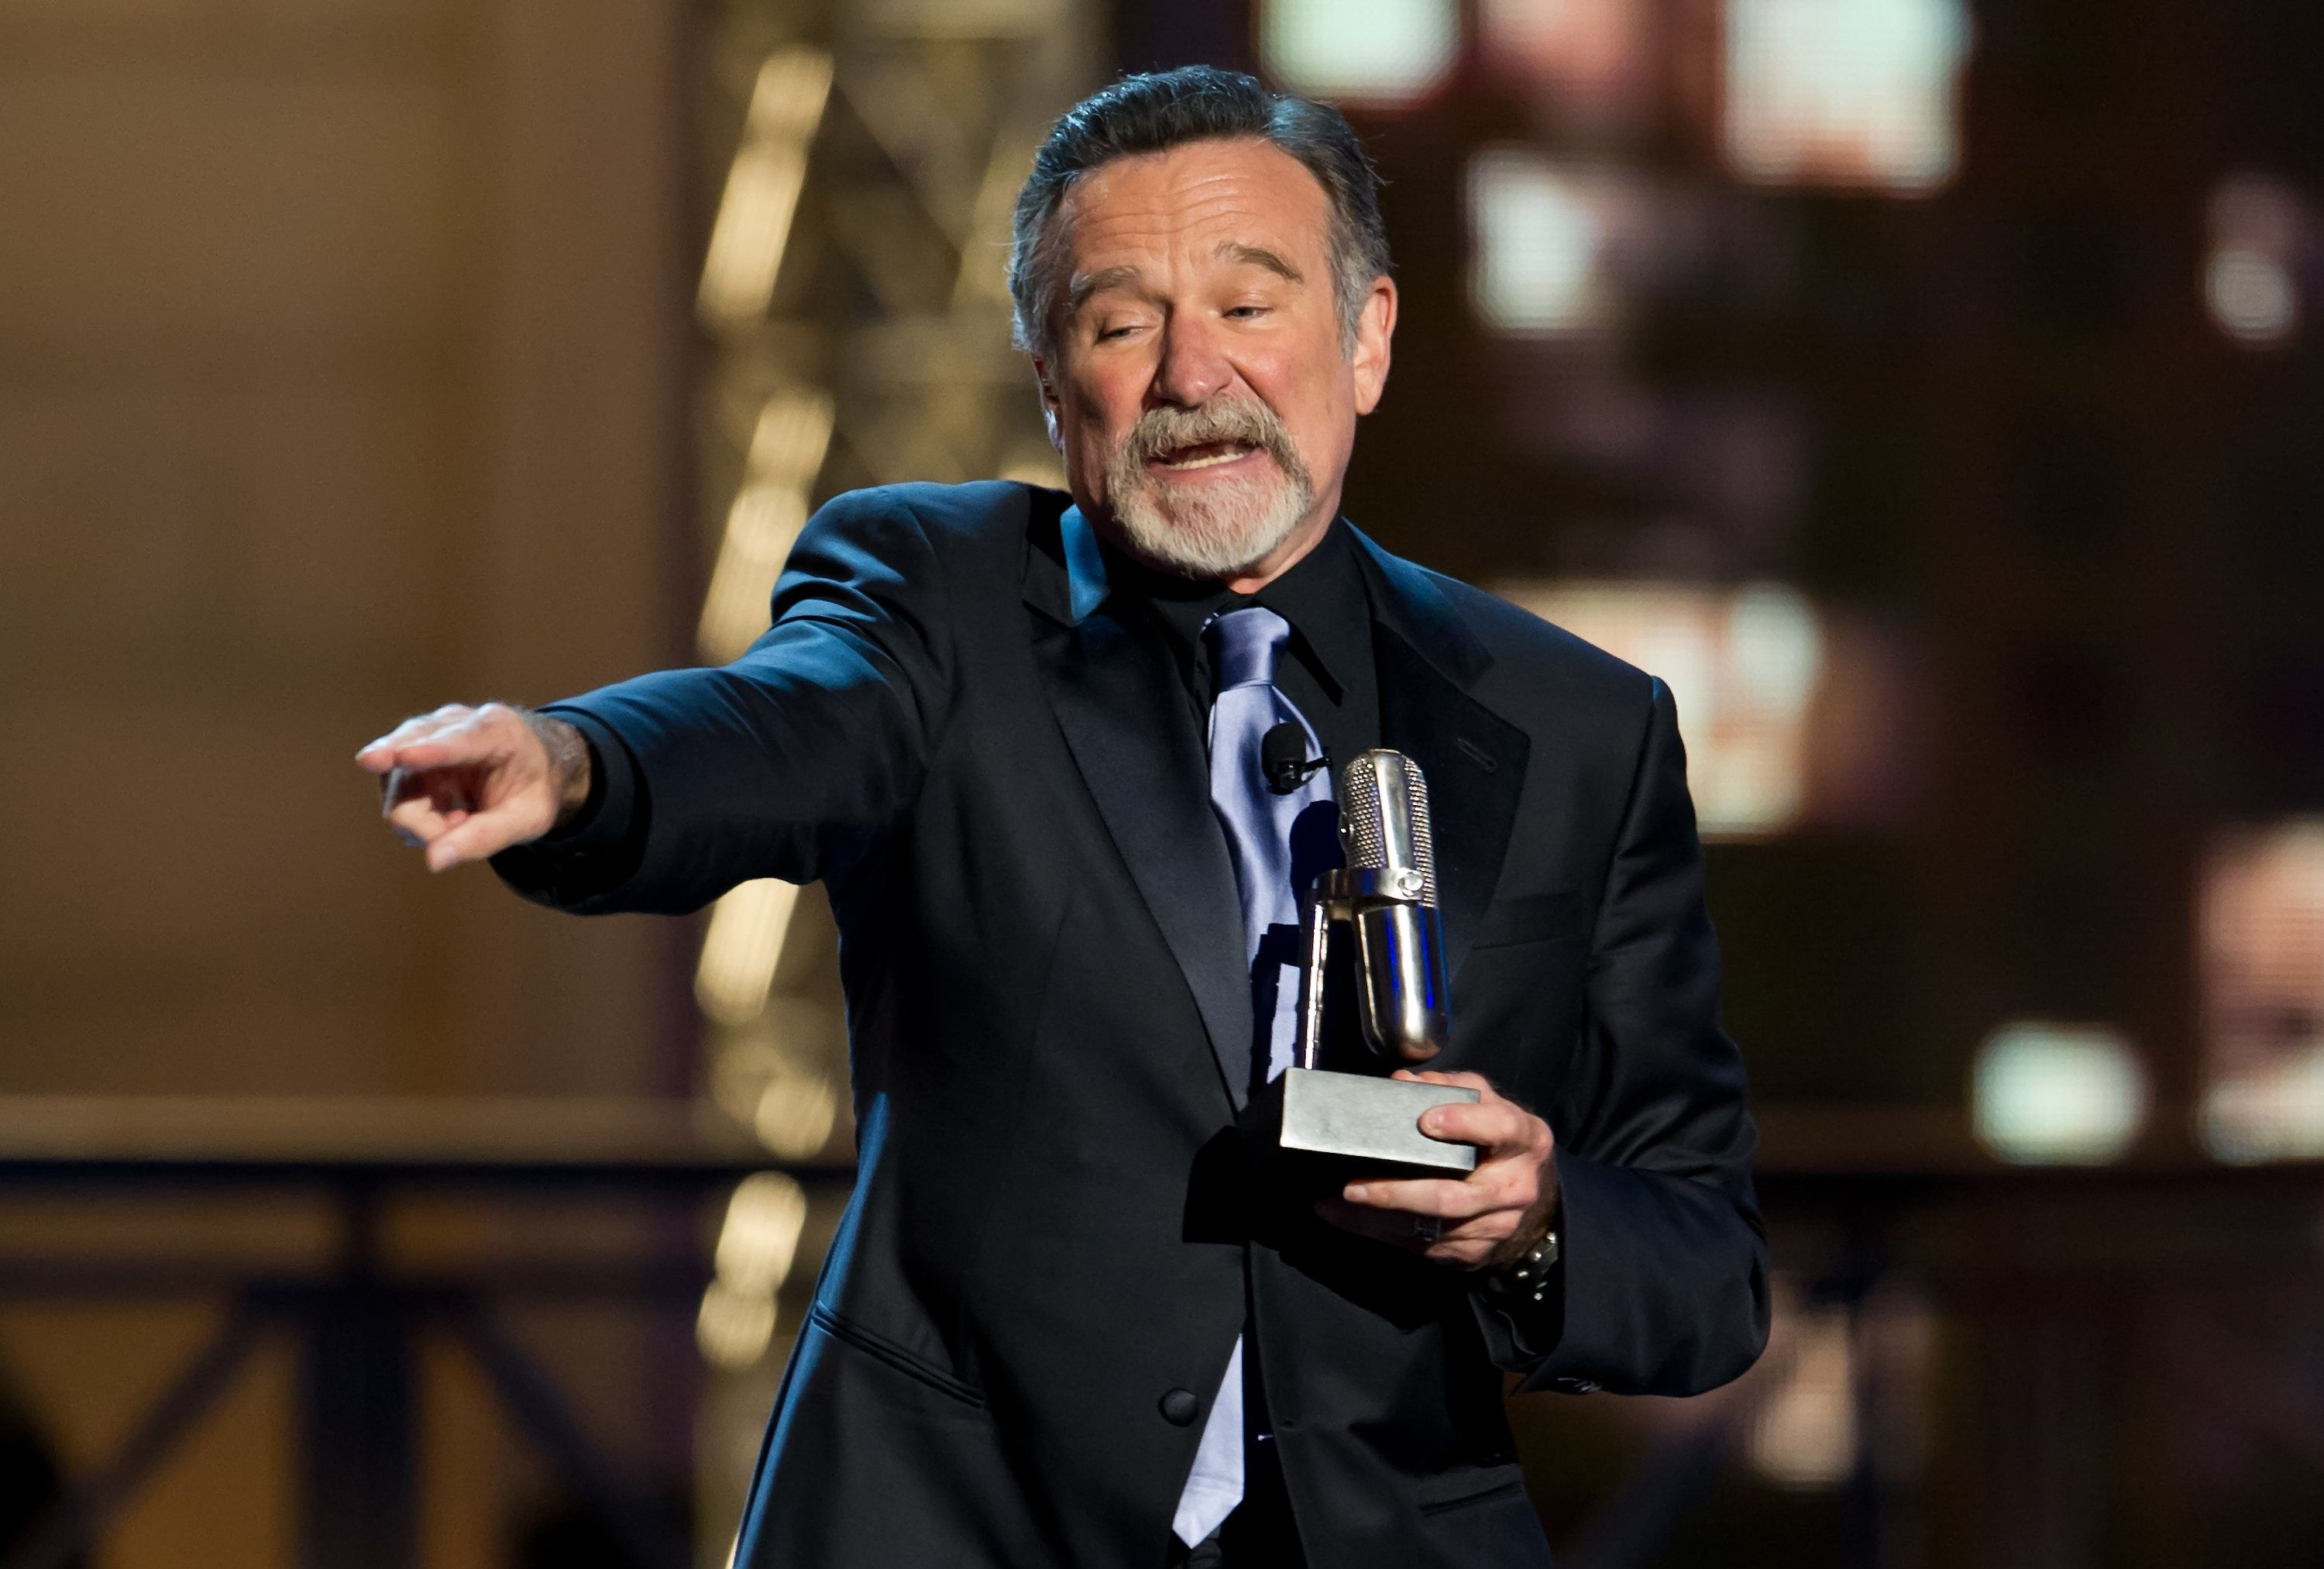 NEW YORK, NY - APRIL 28:  Comedian Robin Williams accepts an award onstage at The Comedy Awards 2012 at Hammerstein Ballroom on April 28, 2012 in New York City.  (Photo by Gilbert Carrasquillo/FilmMagic)